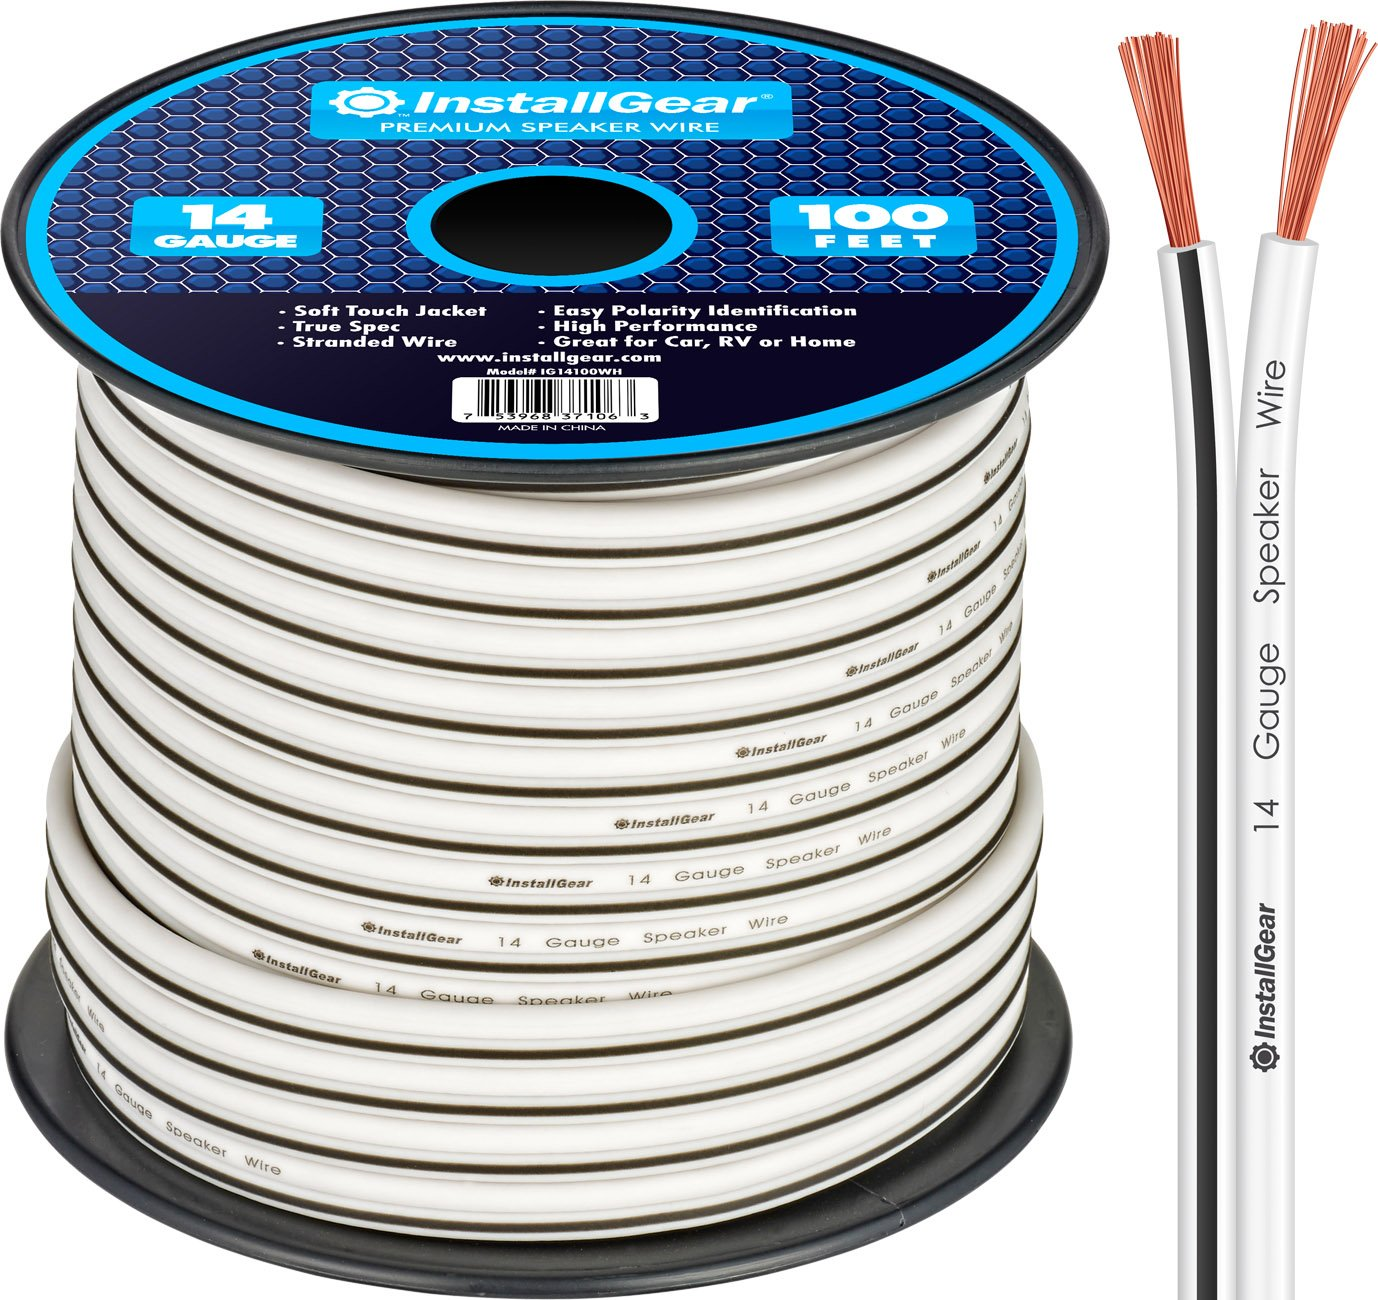 InstallGear 14 Gauge AWG 100ft Speaker Wire Cable - White by InstallGear